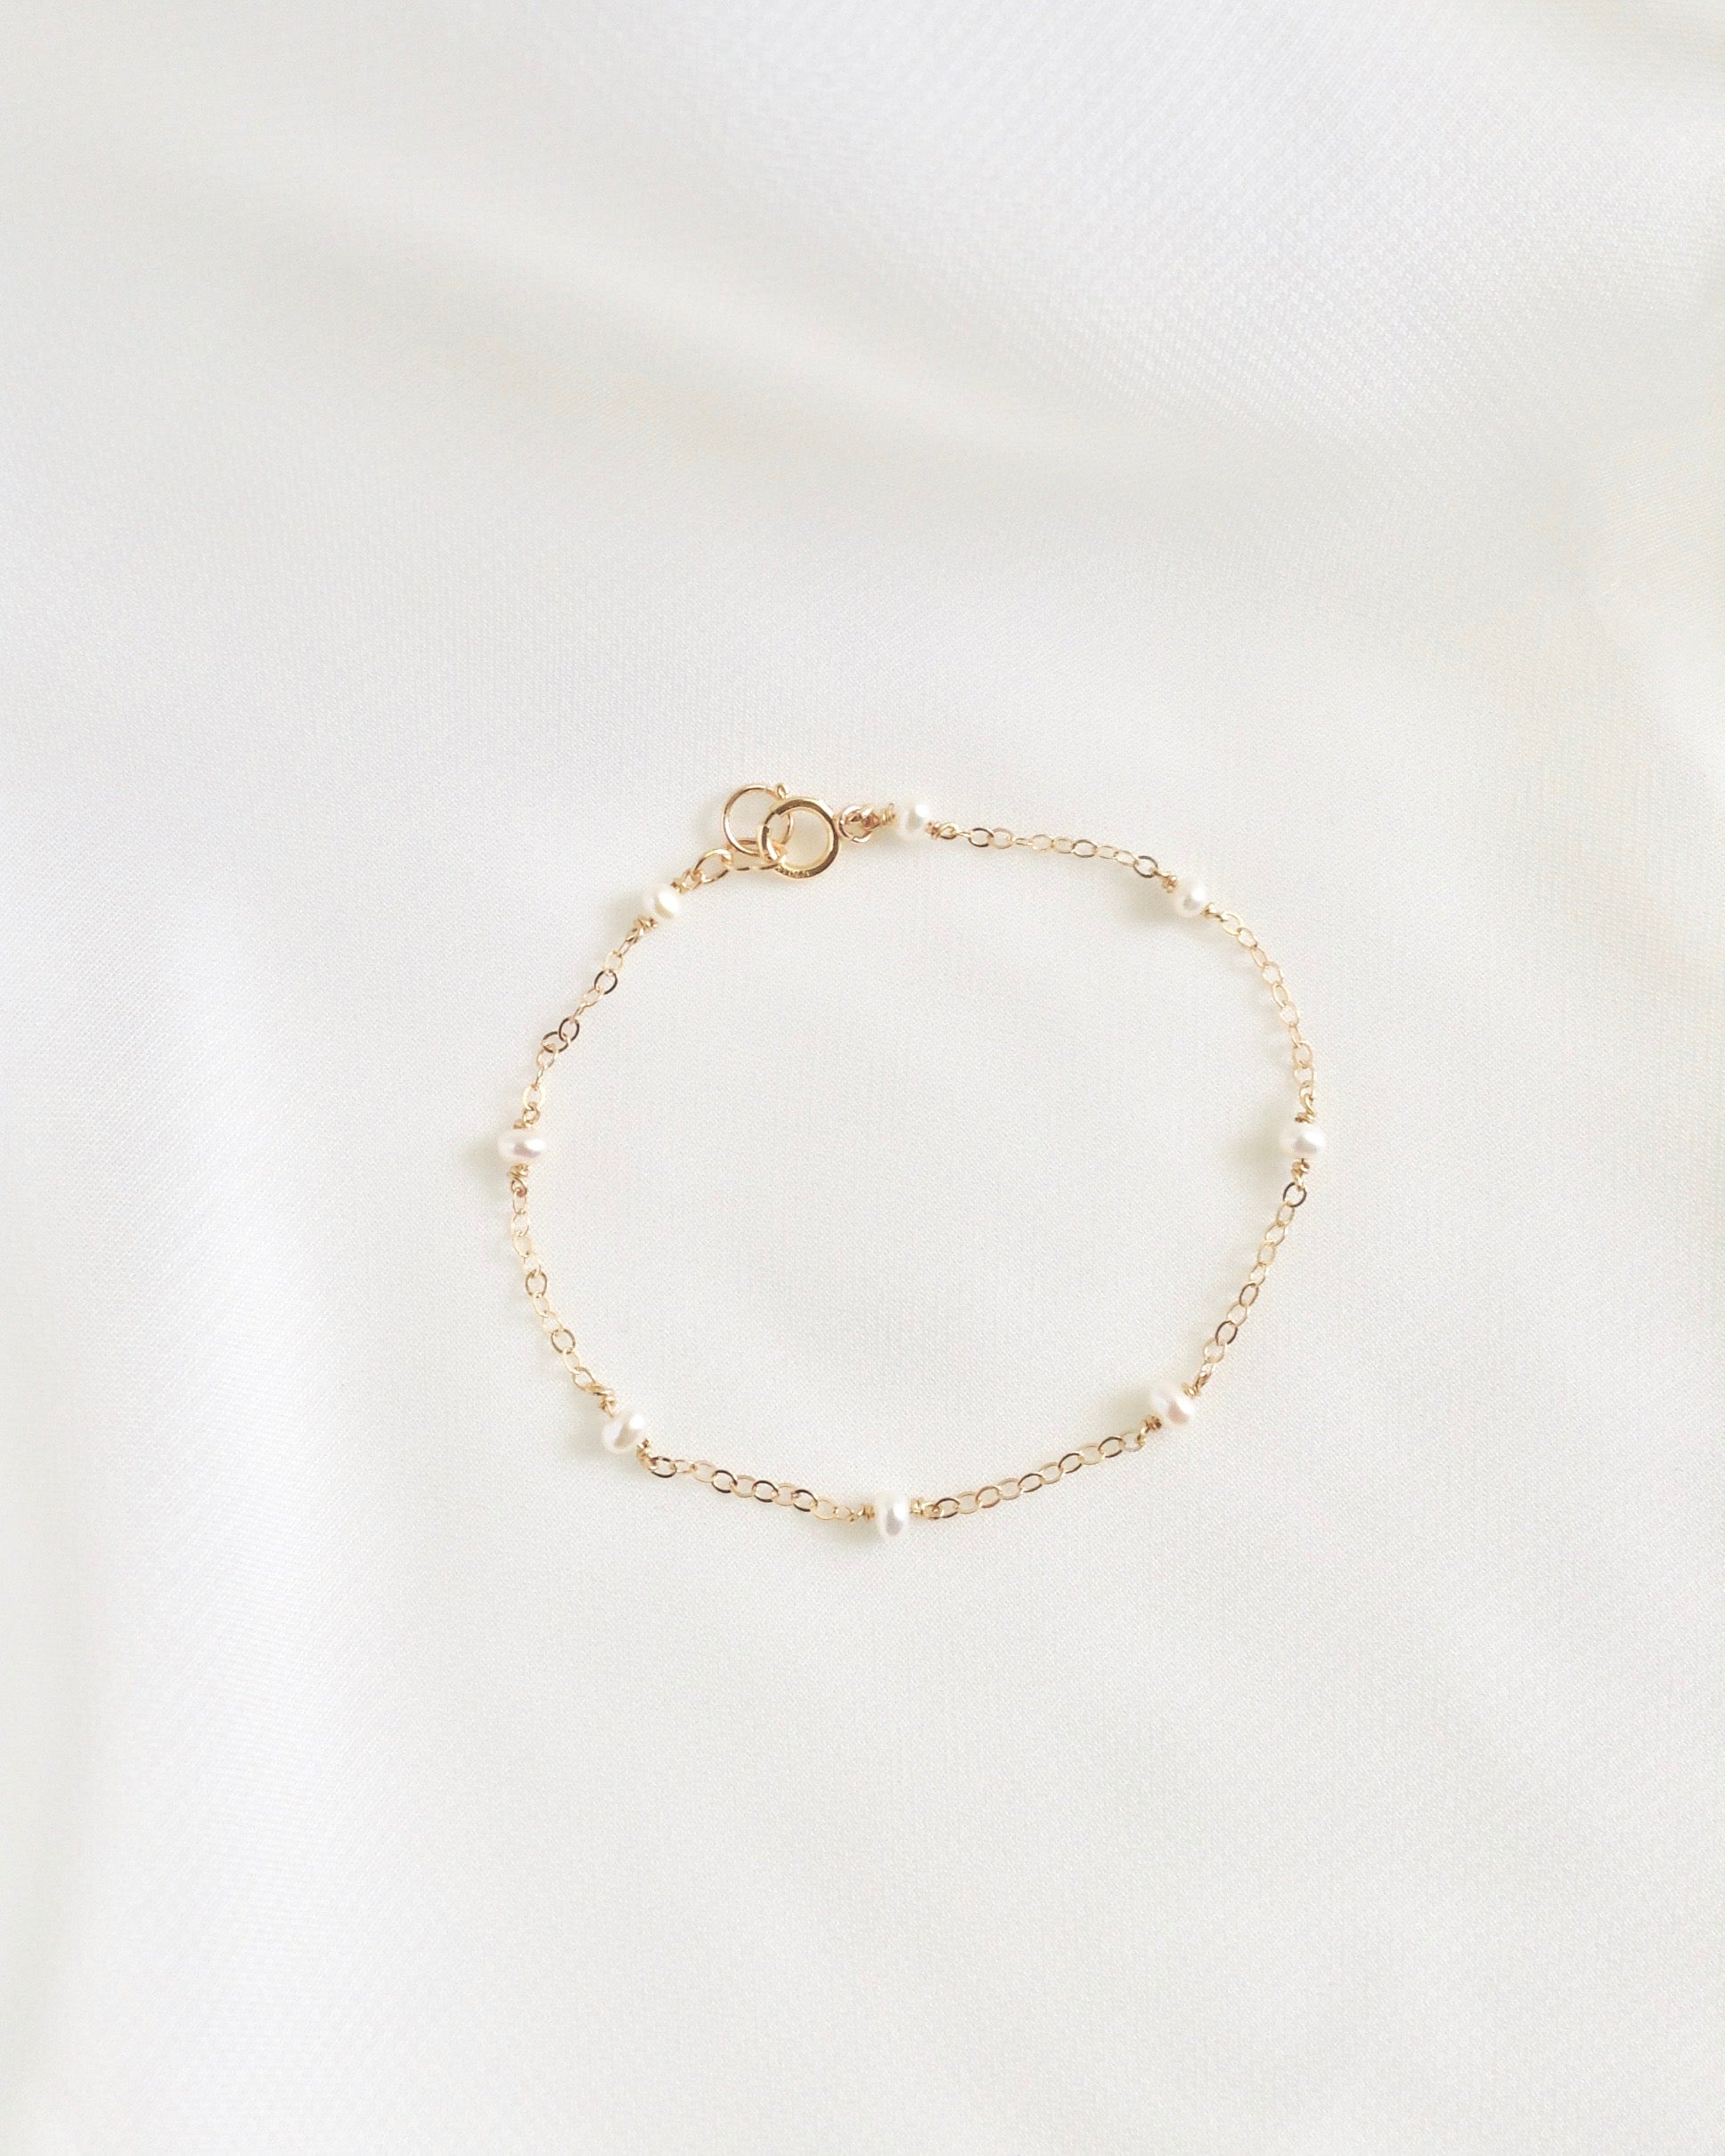 Dainty Pearl Chain Bracelet | Tiny Minimalist Pearl Bracelet In Gold Filled or Sterling Silver | IB Jewelry